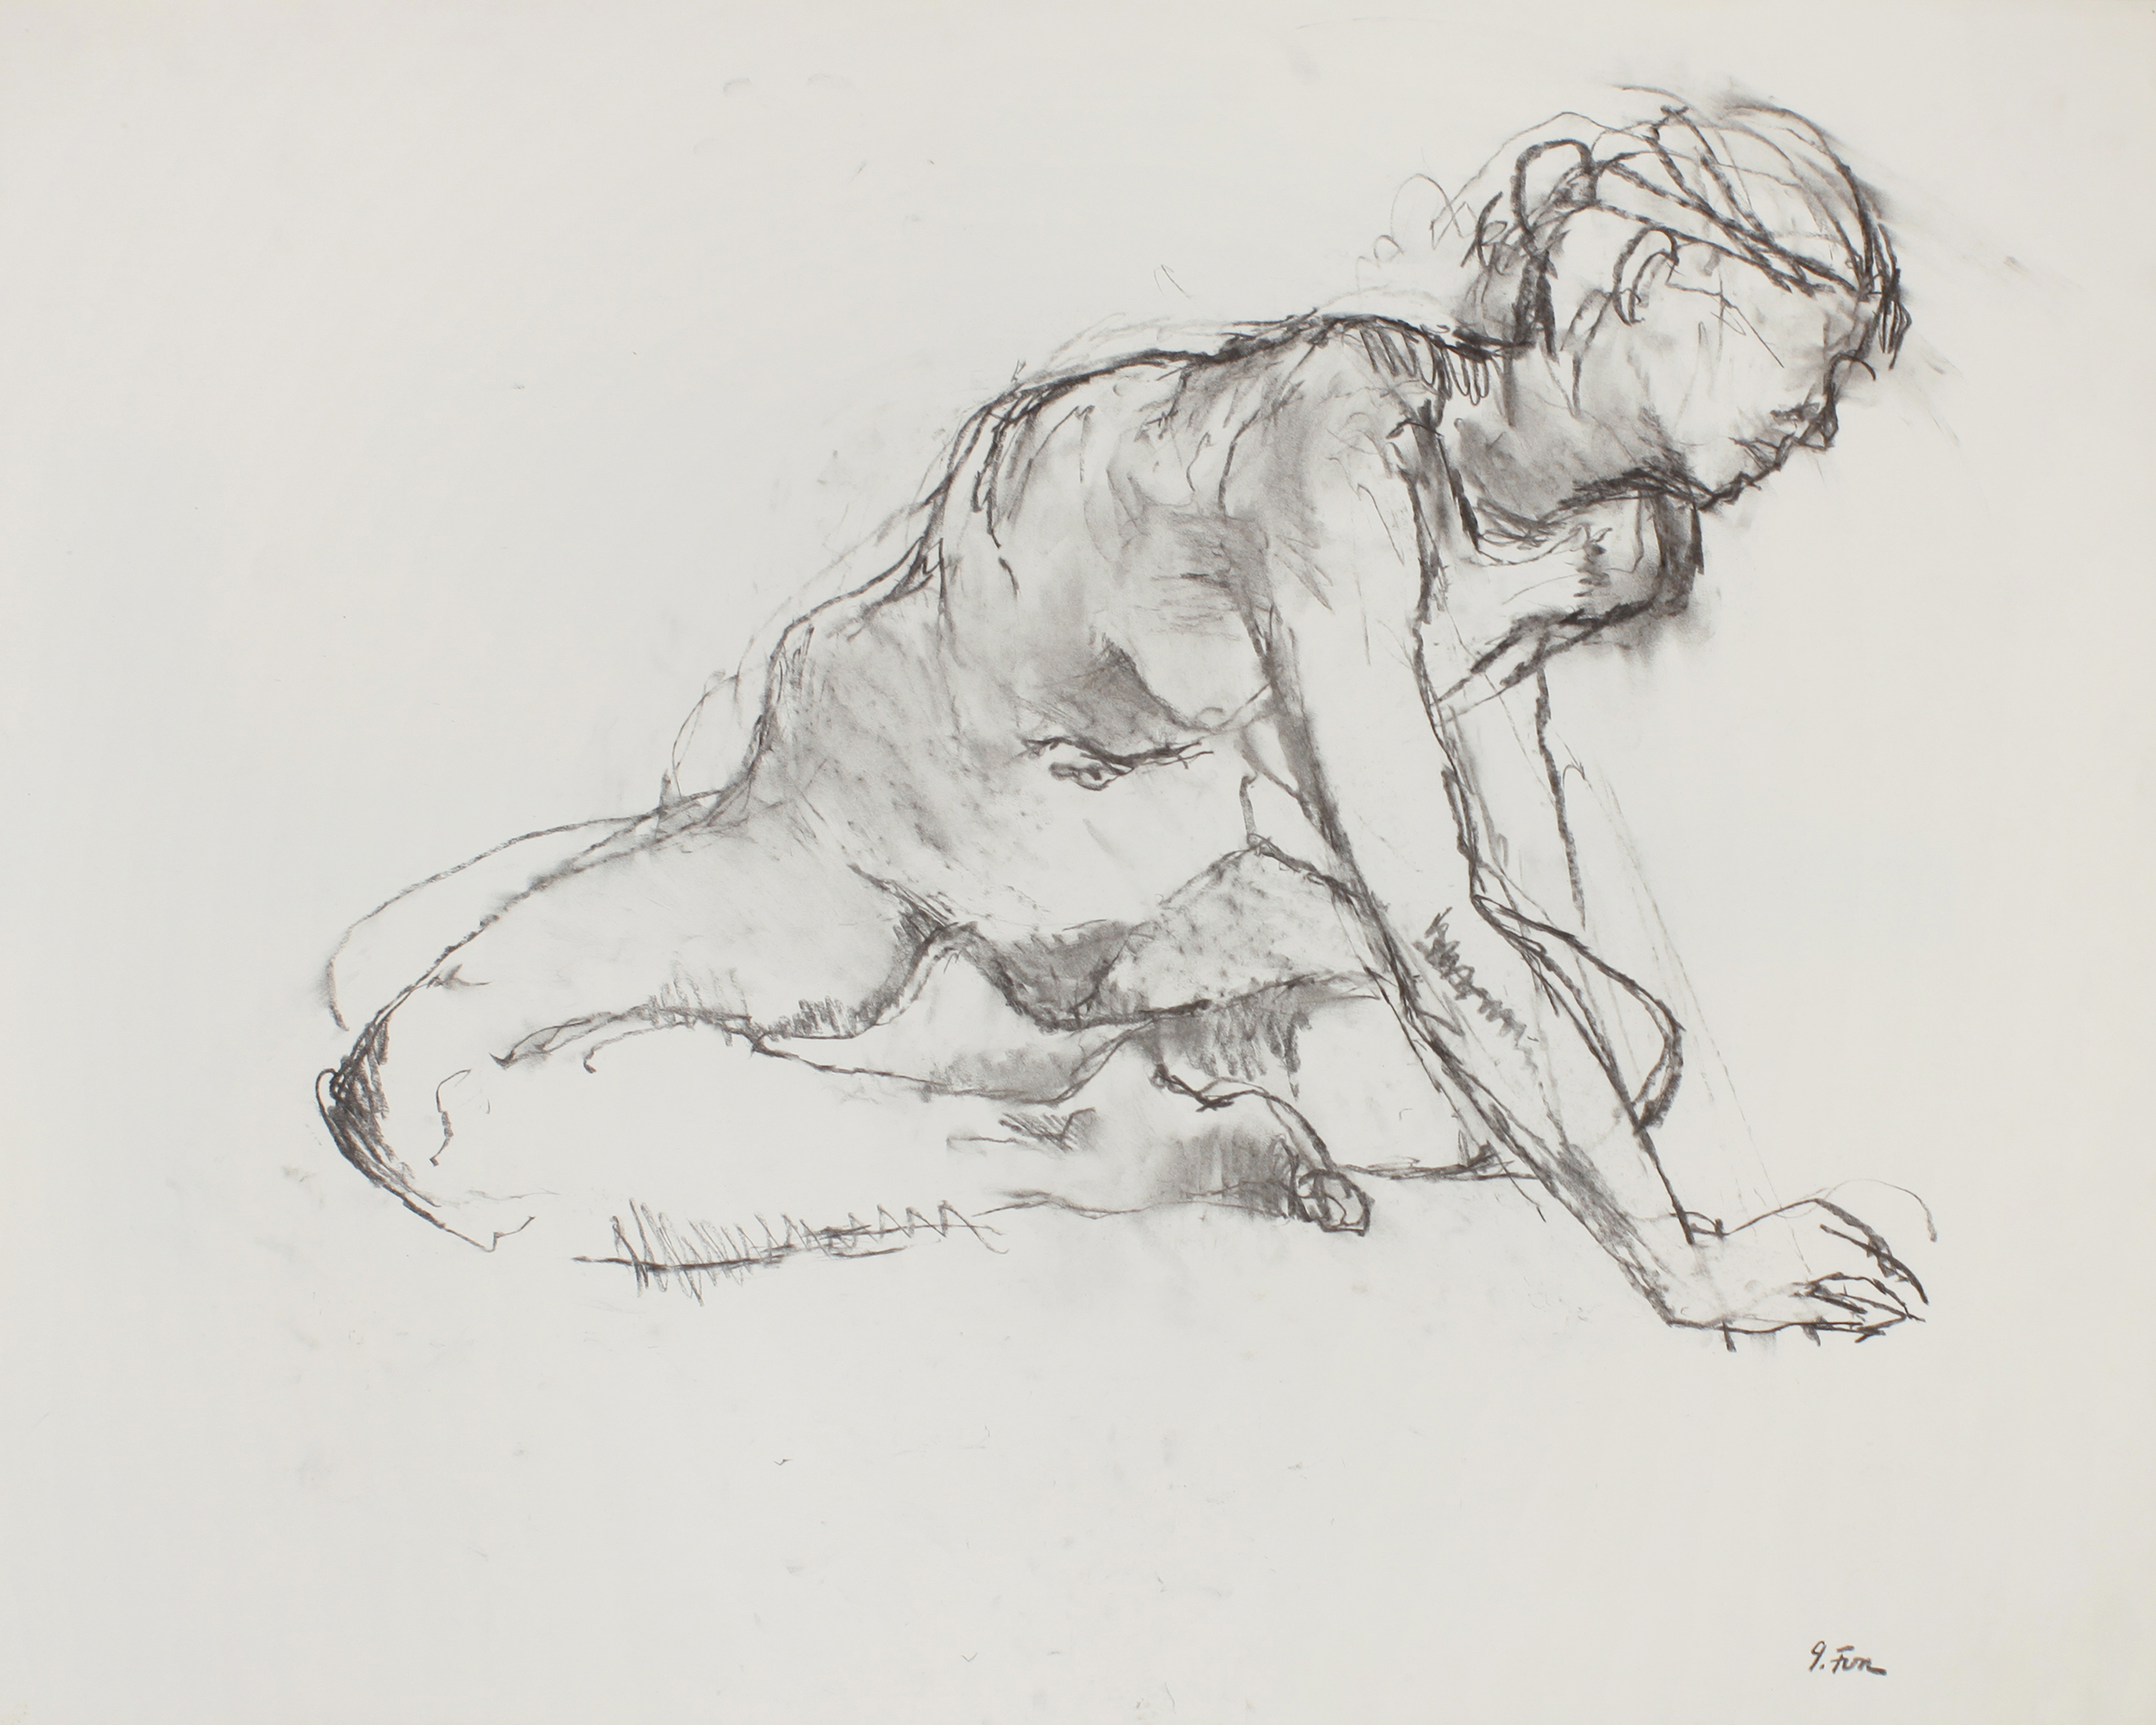 Seated Nude with Cross Legs and Extended Arm